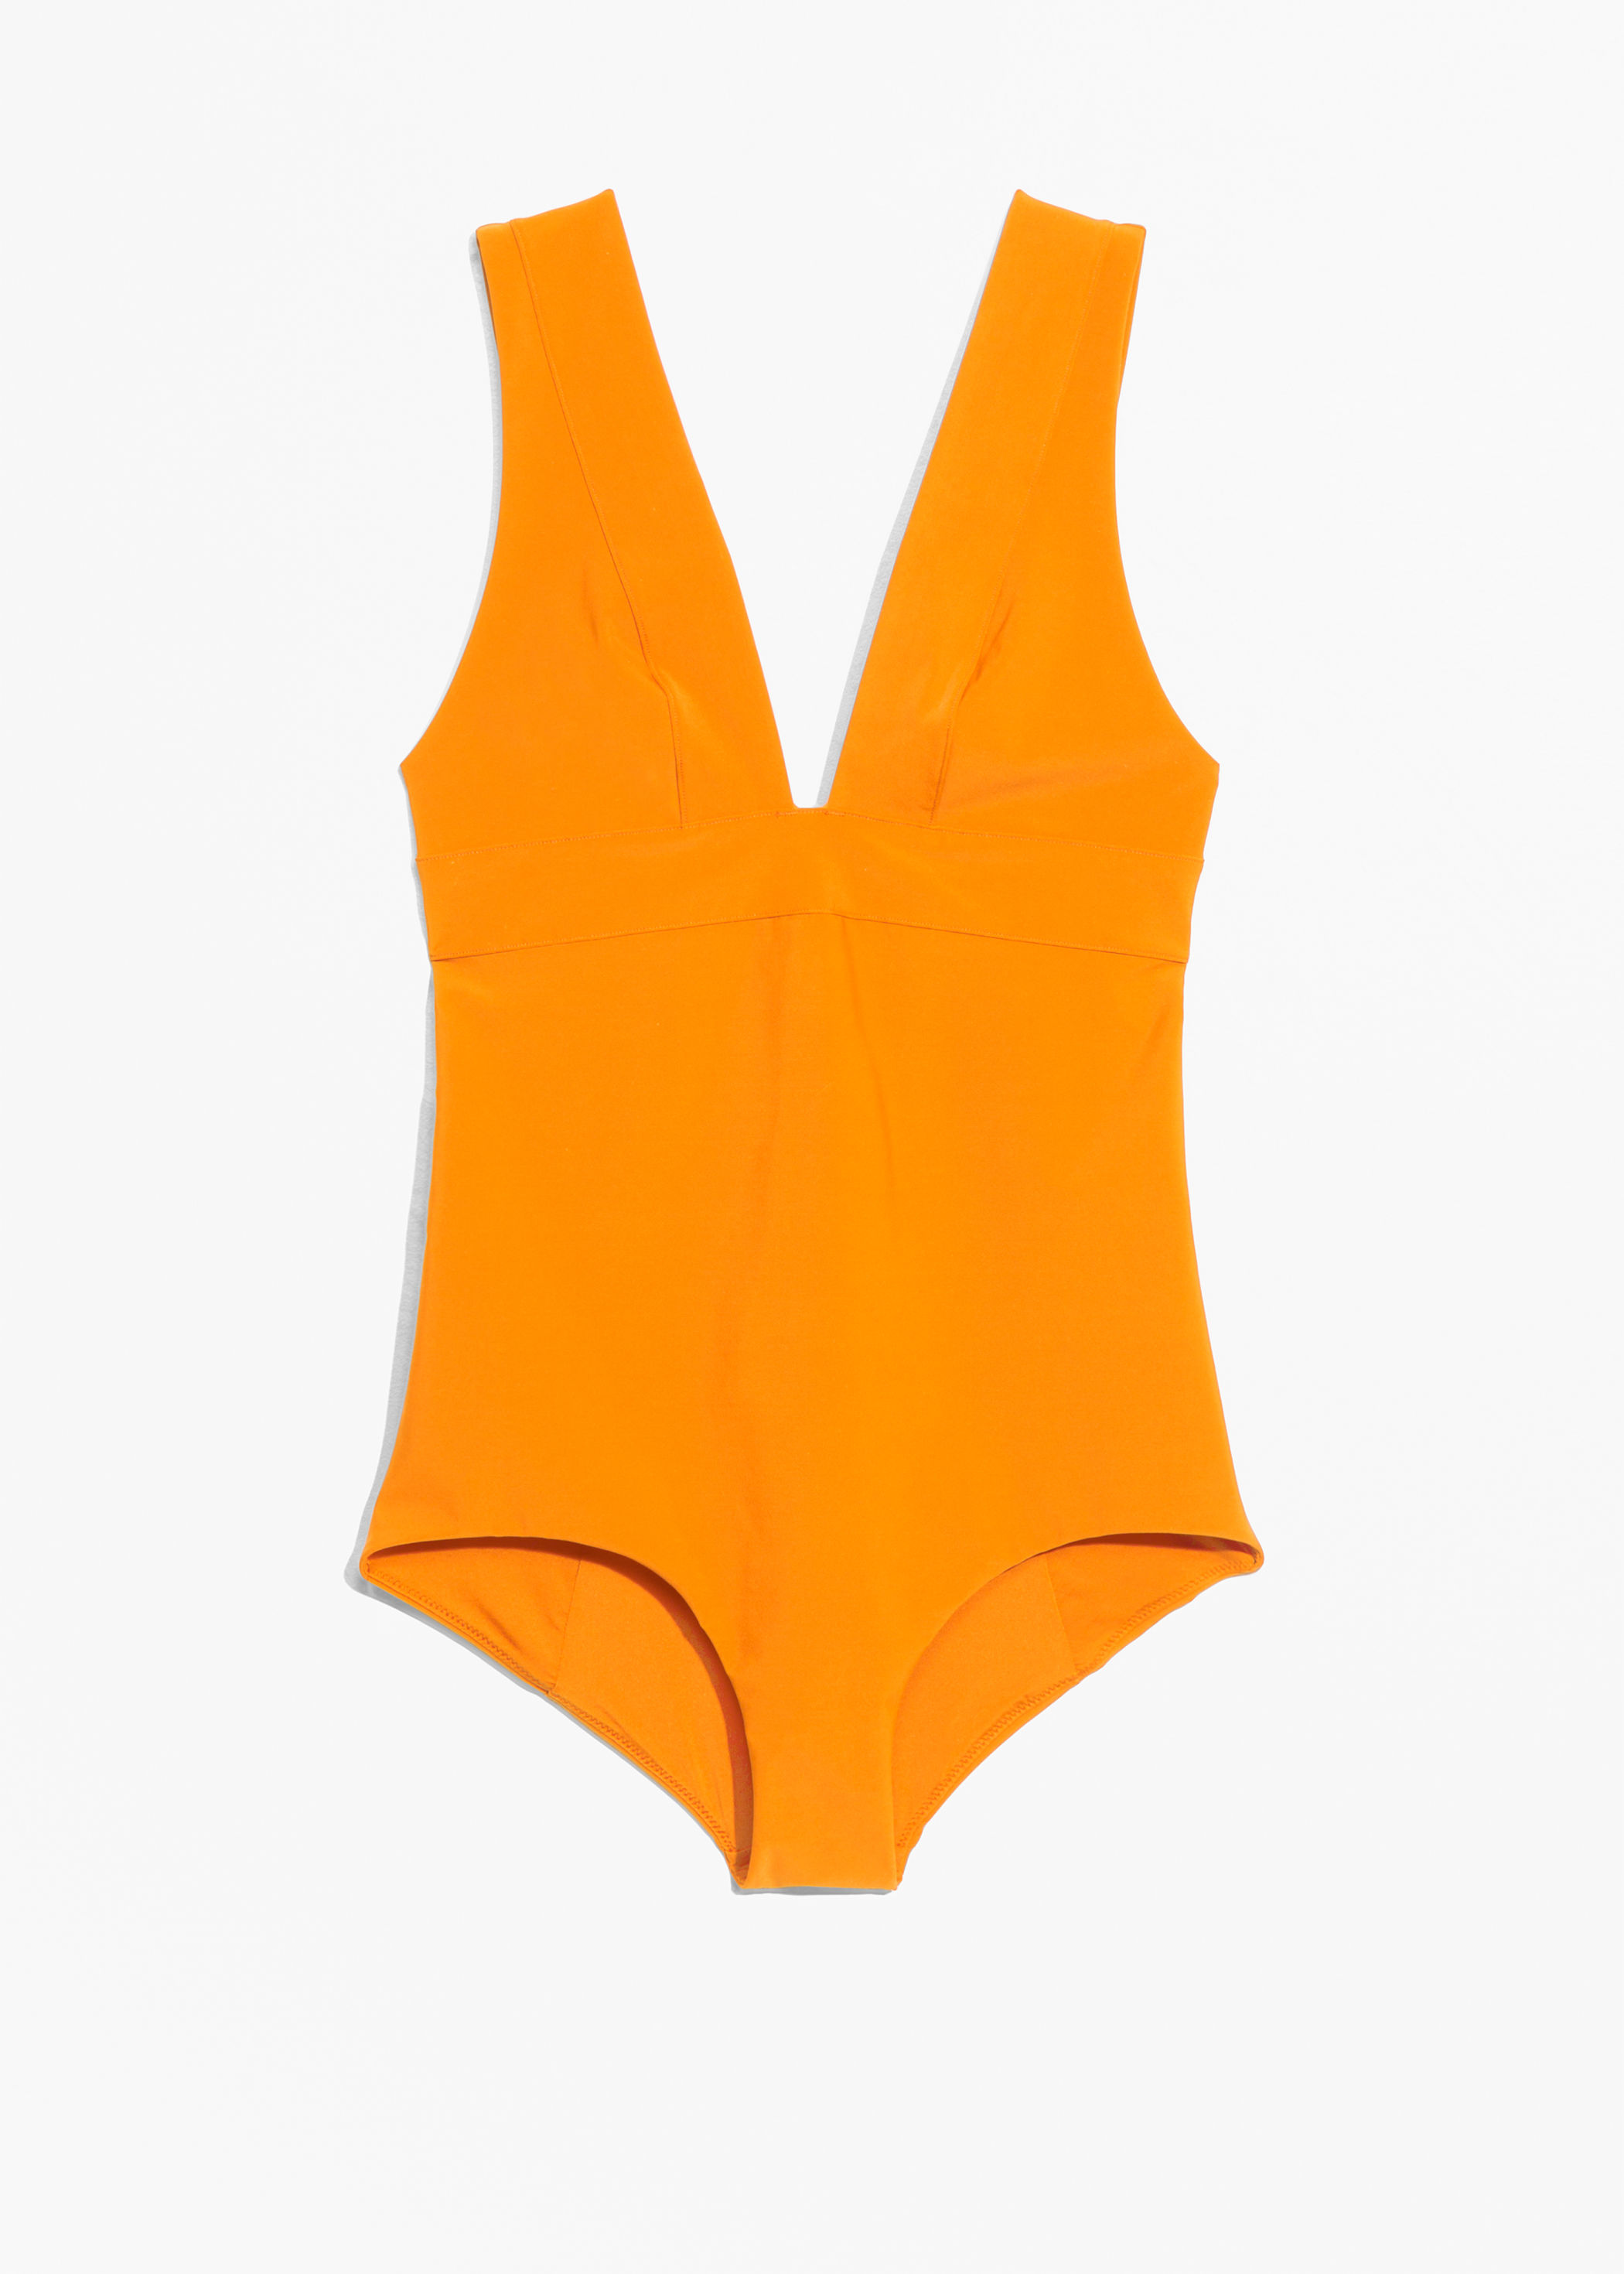 ecbdba2bd3 New Swimsuit Trends 2019 Cool Bikini, One-Piece Styles